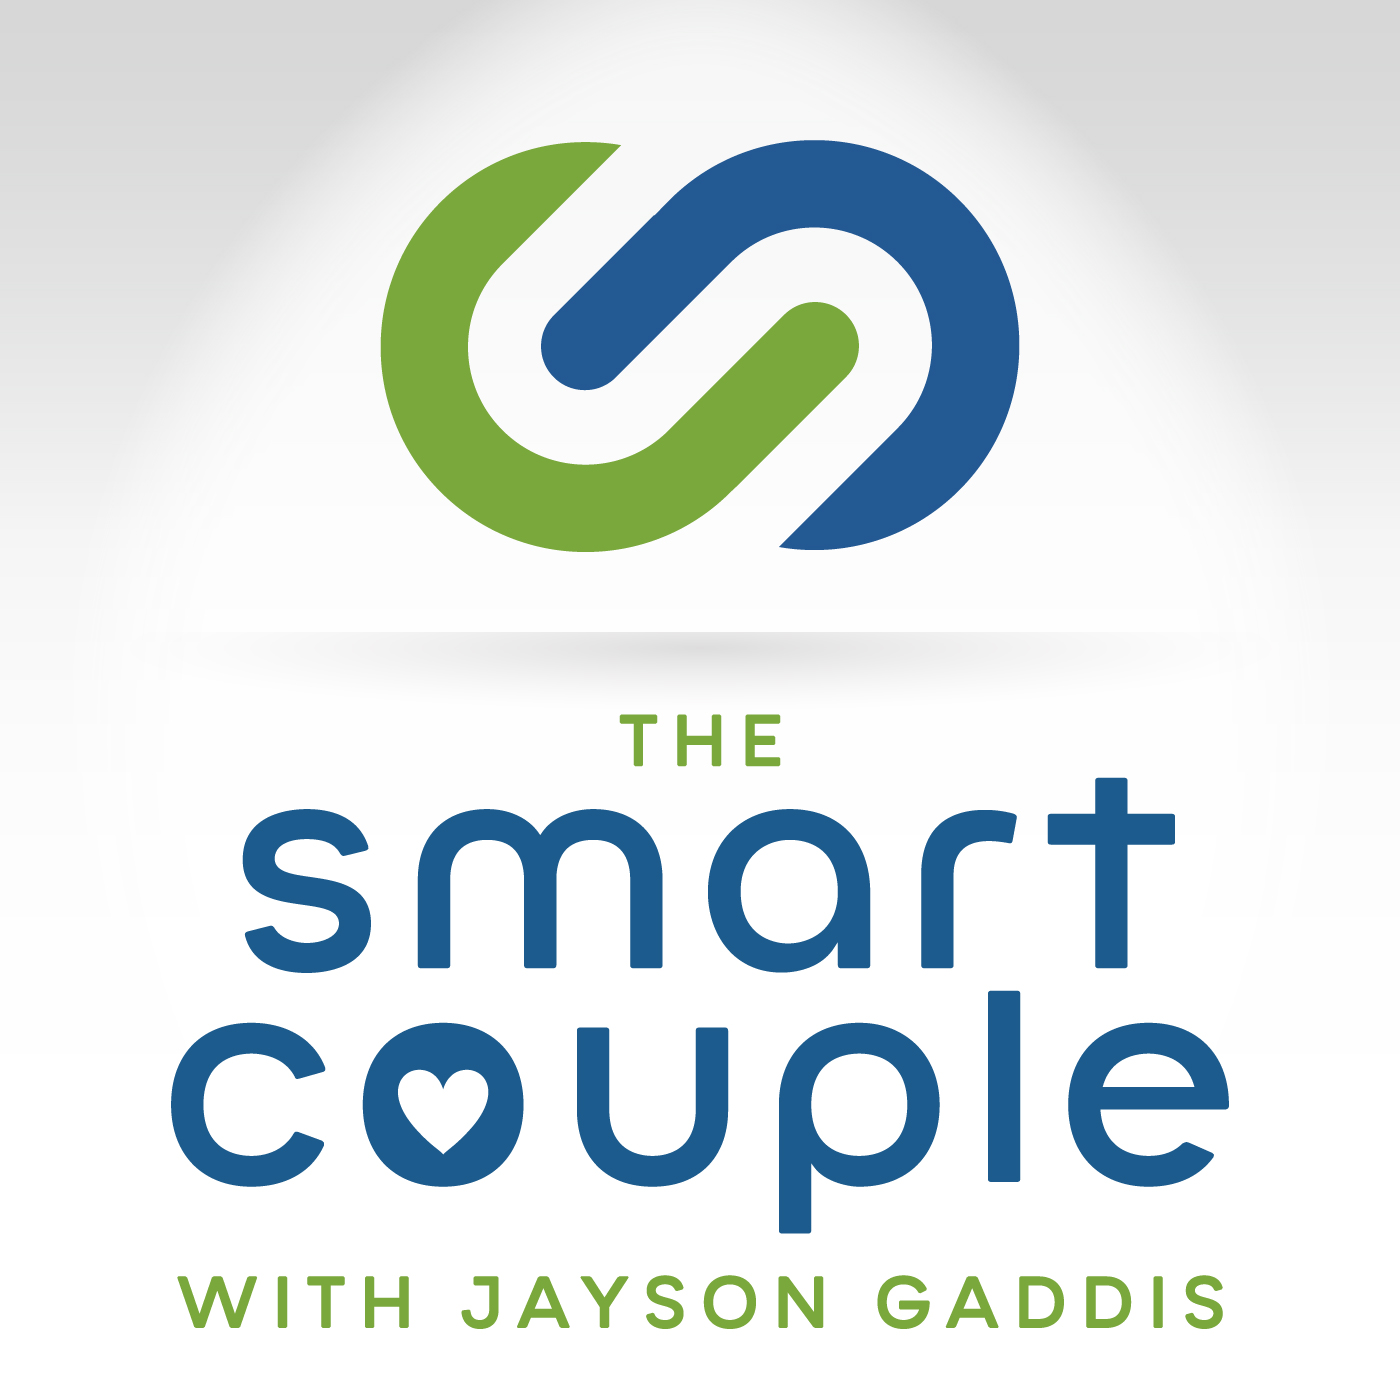 The Relationship School Podcast - SC 198 - 4 Men Discuss Love & The Path Of Personal Transformation